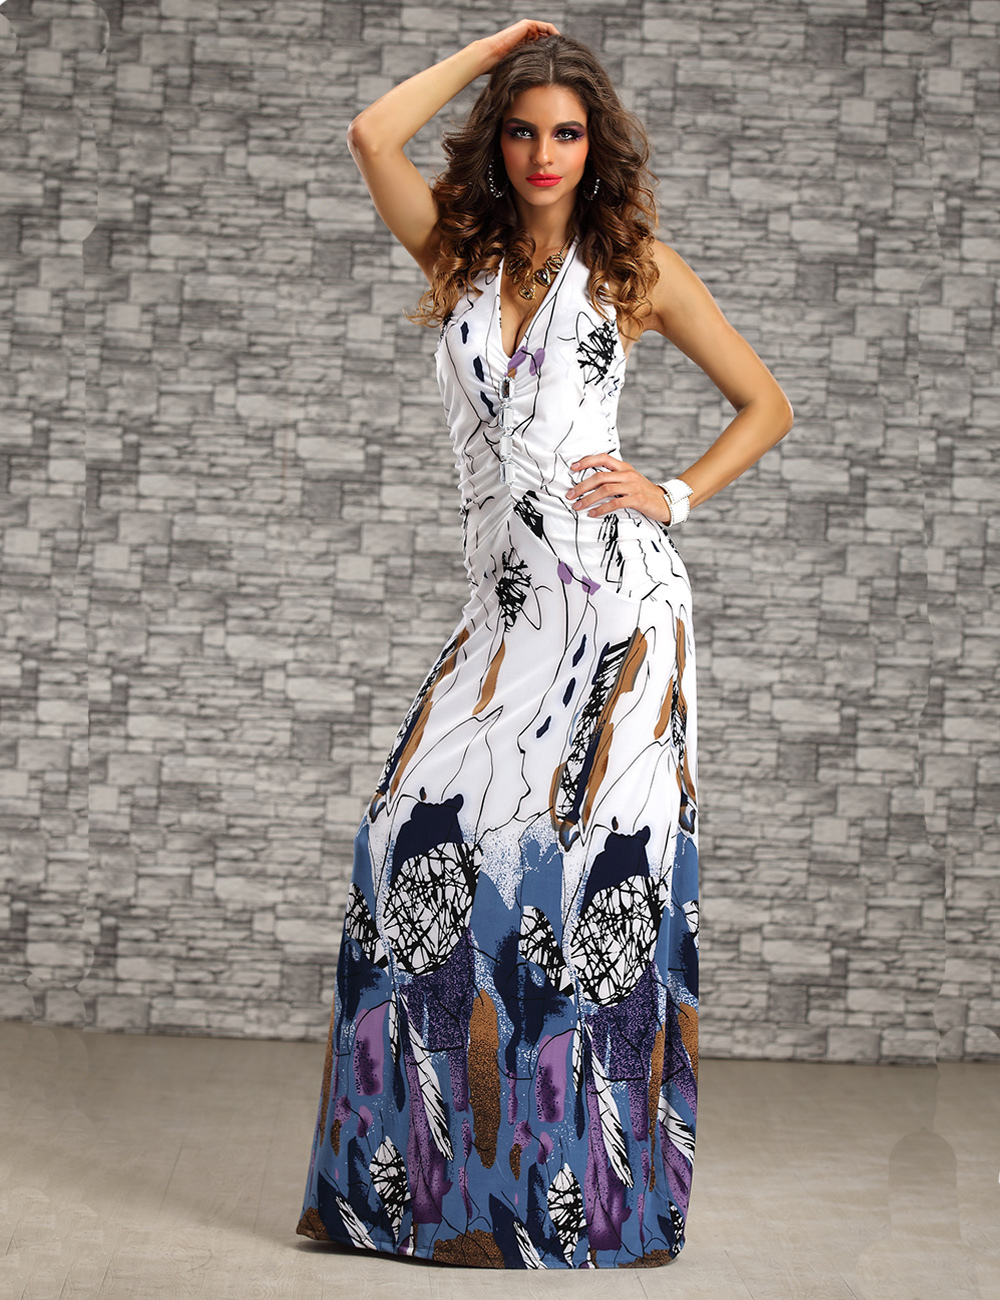 9 Colors New Arrive Fashion Summer Beach Dress For Women Halter Neck Ladies Long Maxi Dress(China (Mainland))